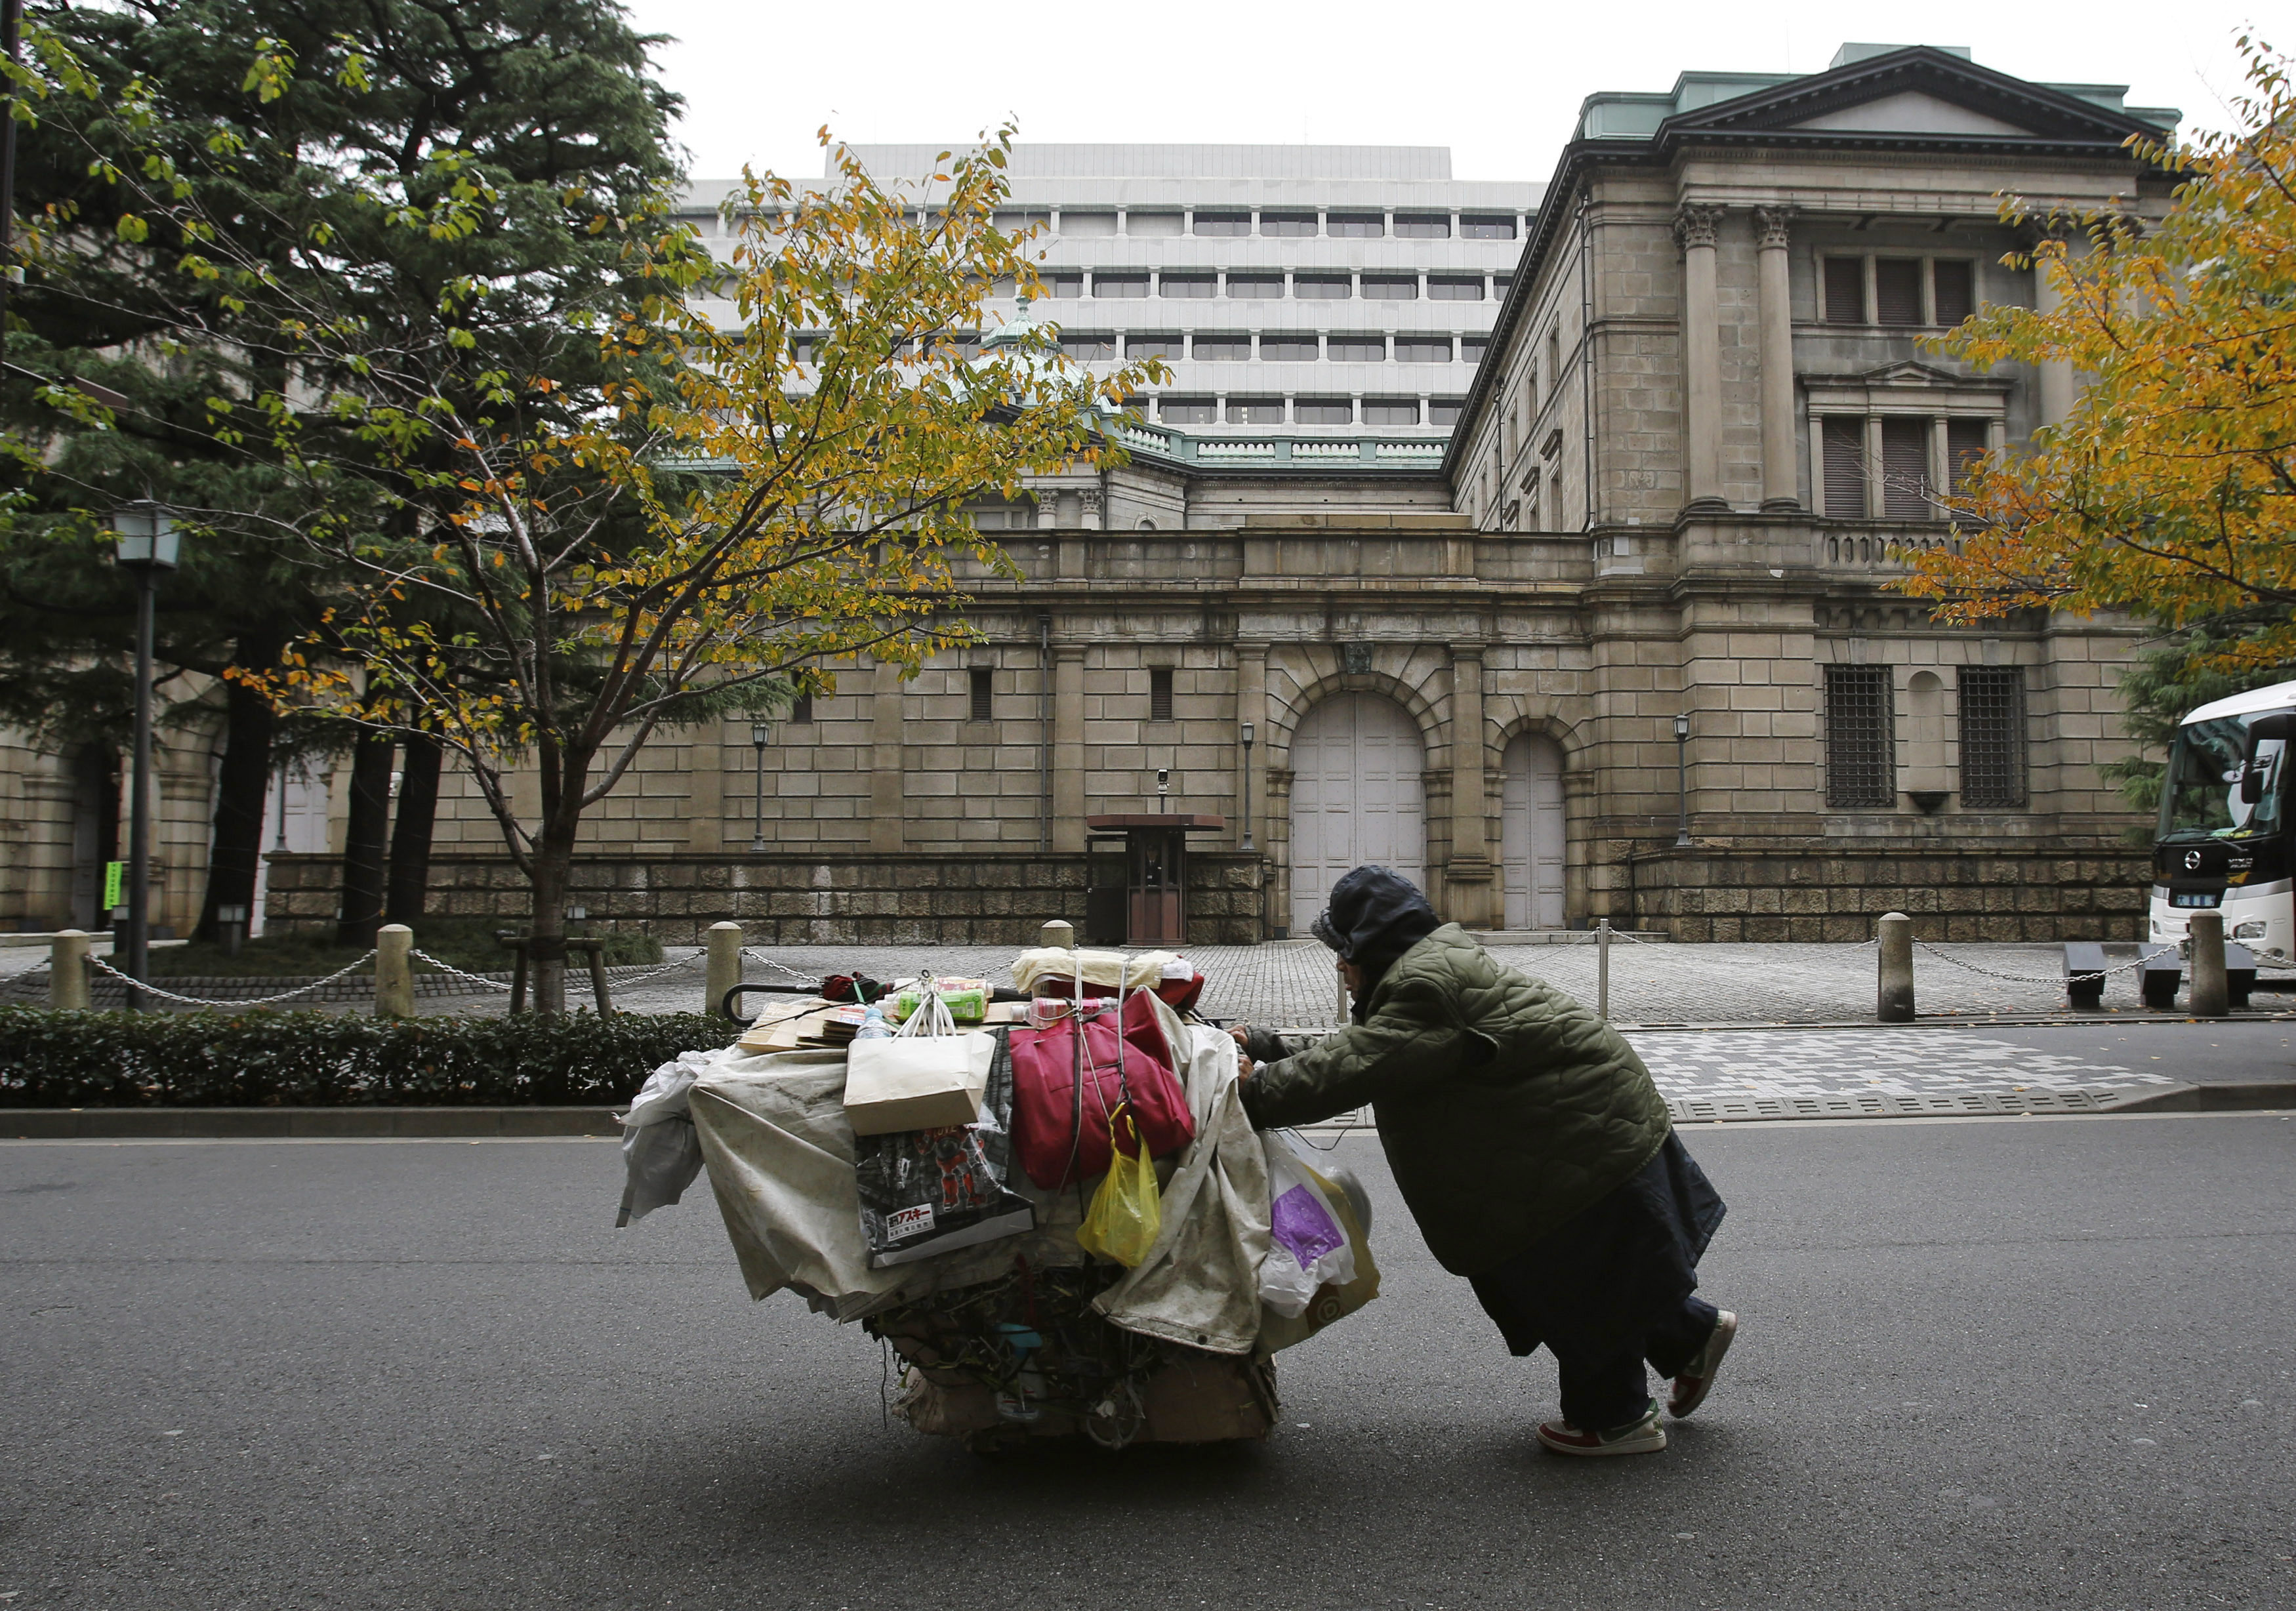 A man pushes a cart loaded with his belongings outside the Bank of Japan (BOJ) headquarters in Tokyo November 26, 2012.   REUTERS/Yuriko Nakao (JAPAN - Tags: SOCIETY BUSINESS POLITICS TPX IMAGES OF THE DAY) - GM1E8BQ0XTB01